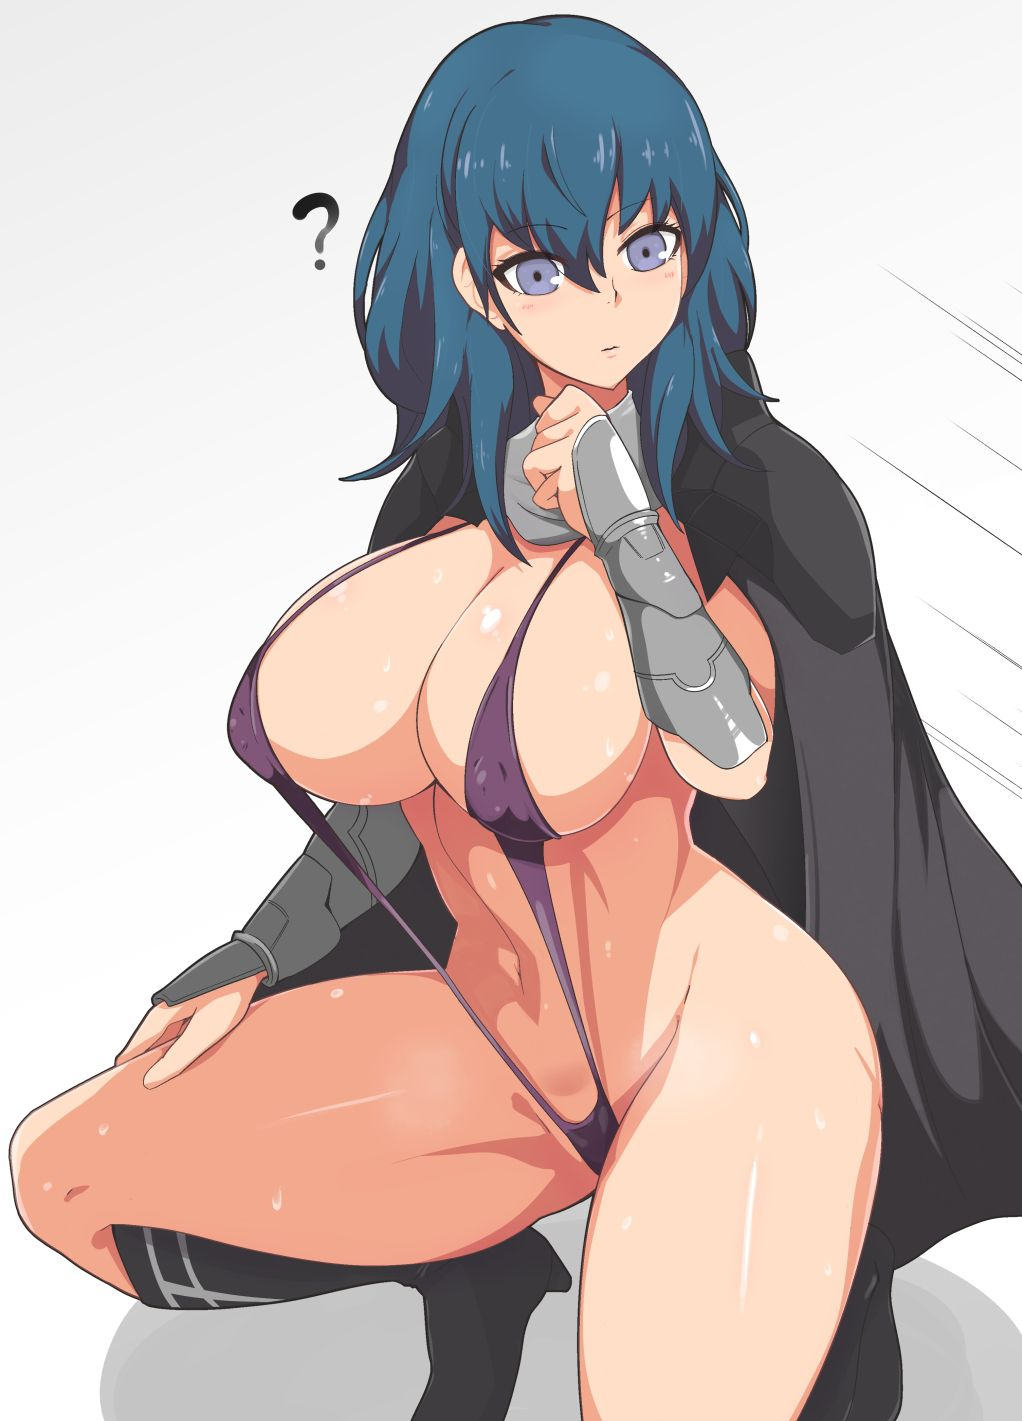 byleth_(fire_emblem)_(female)072